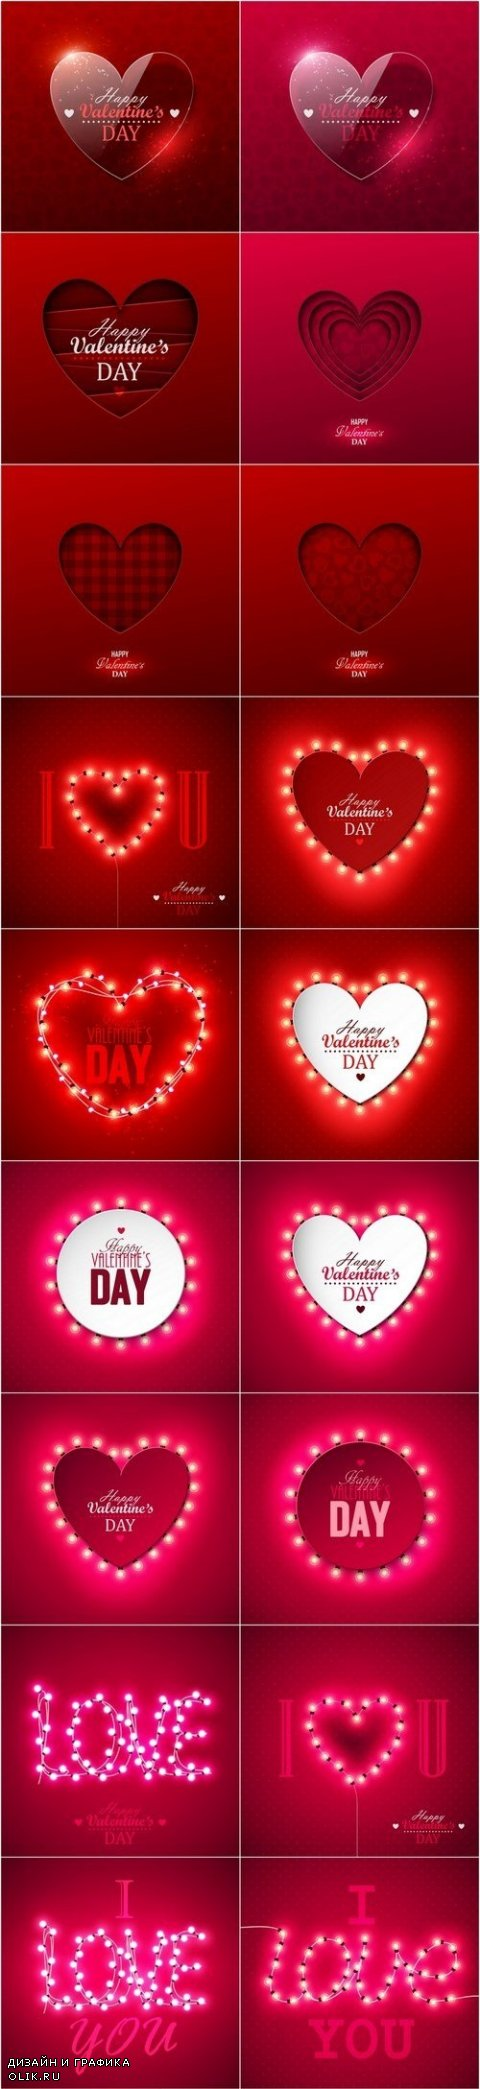 Heart & Love - Happy Valentines Day 7 - Set of 21xEPS Professional Vector Stock